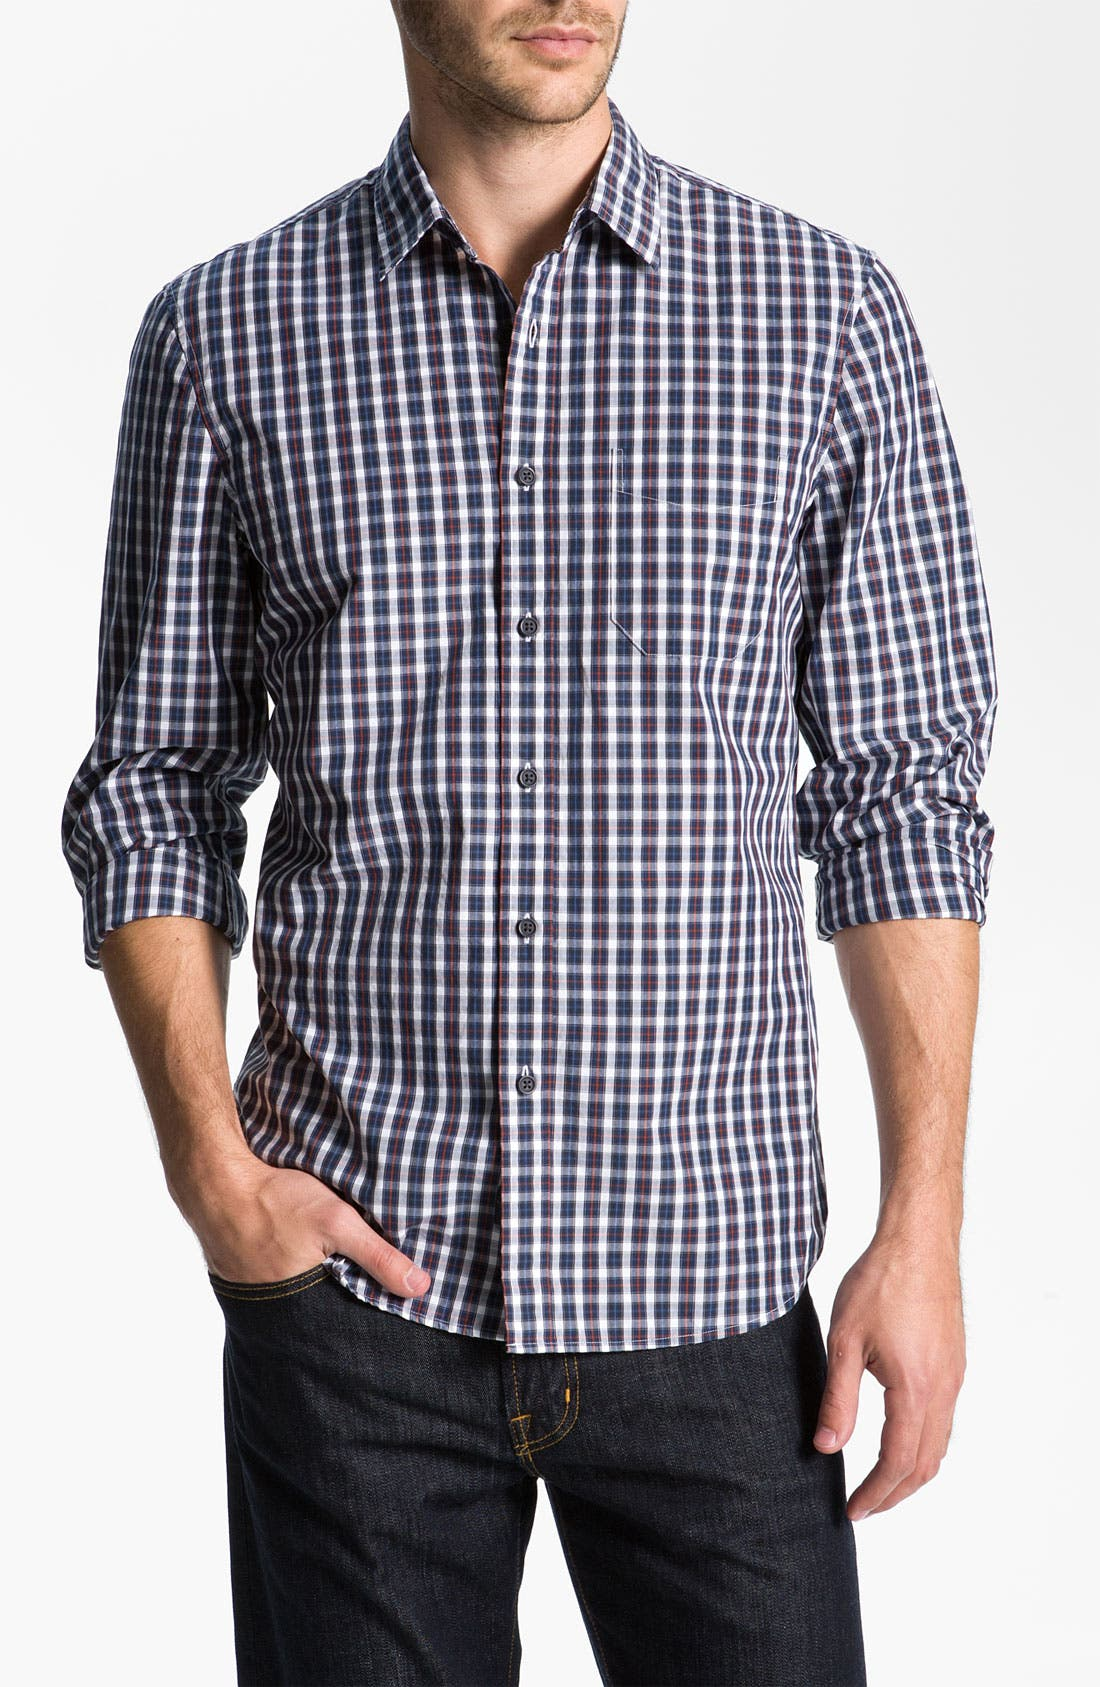 Main Image - Wallin & Bros. Plaid Sport Shirt